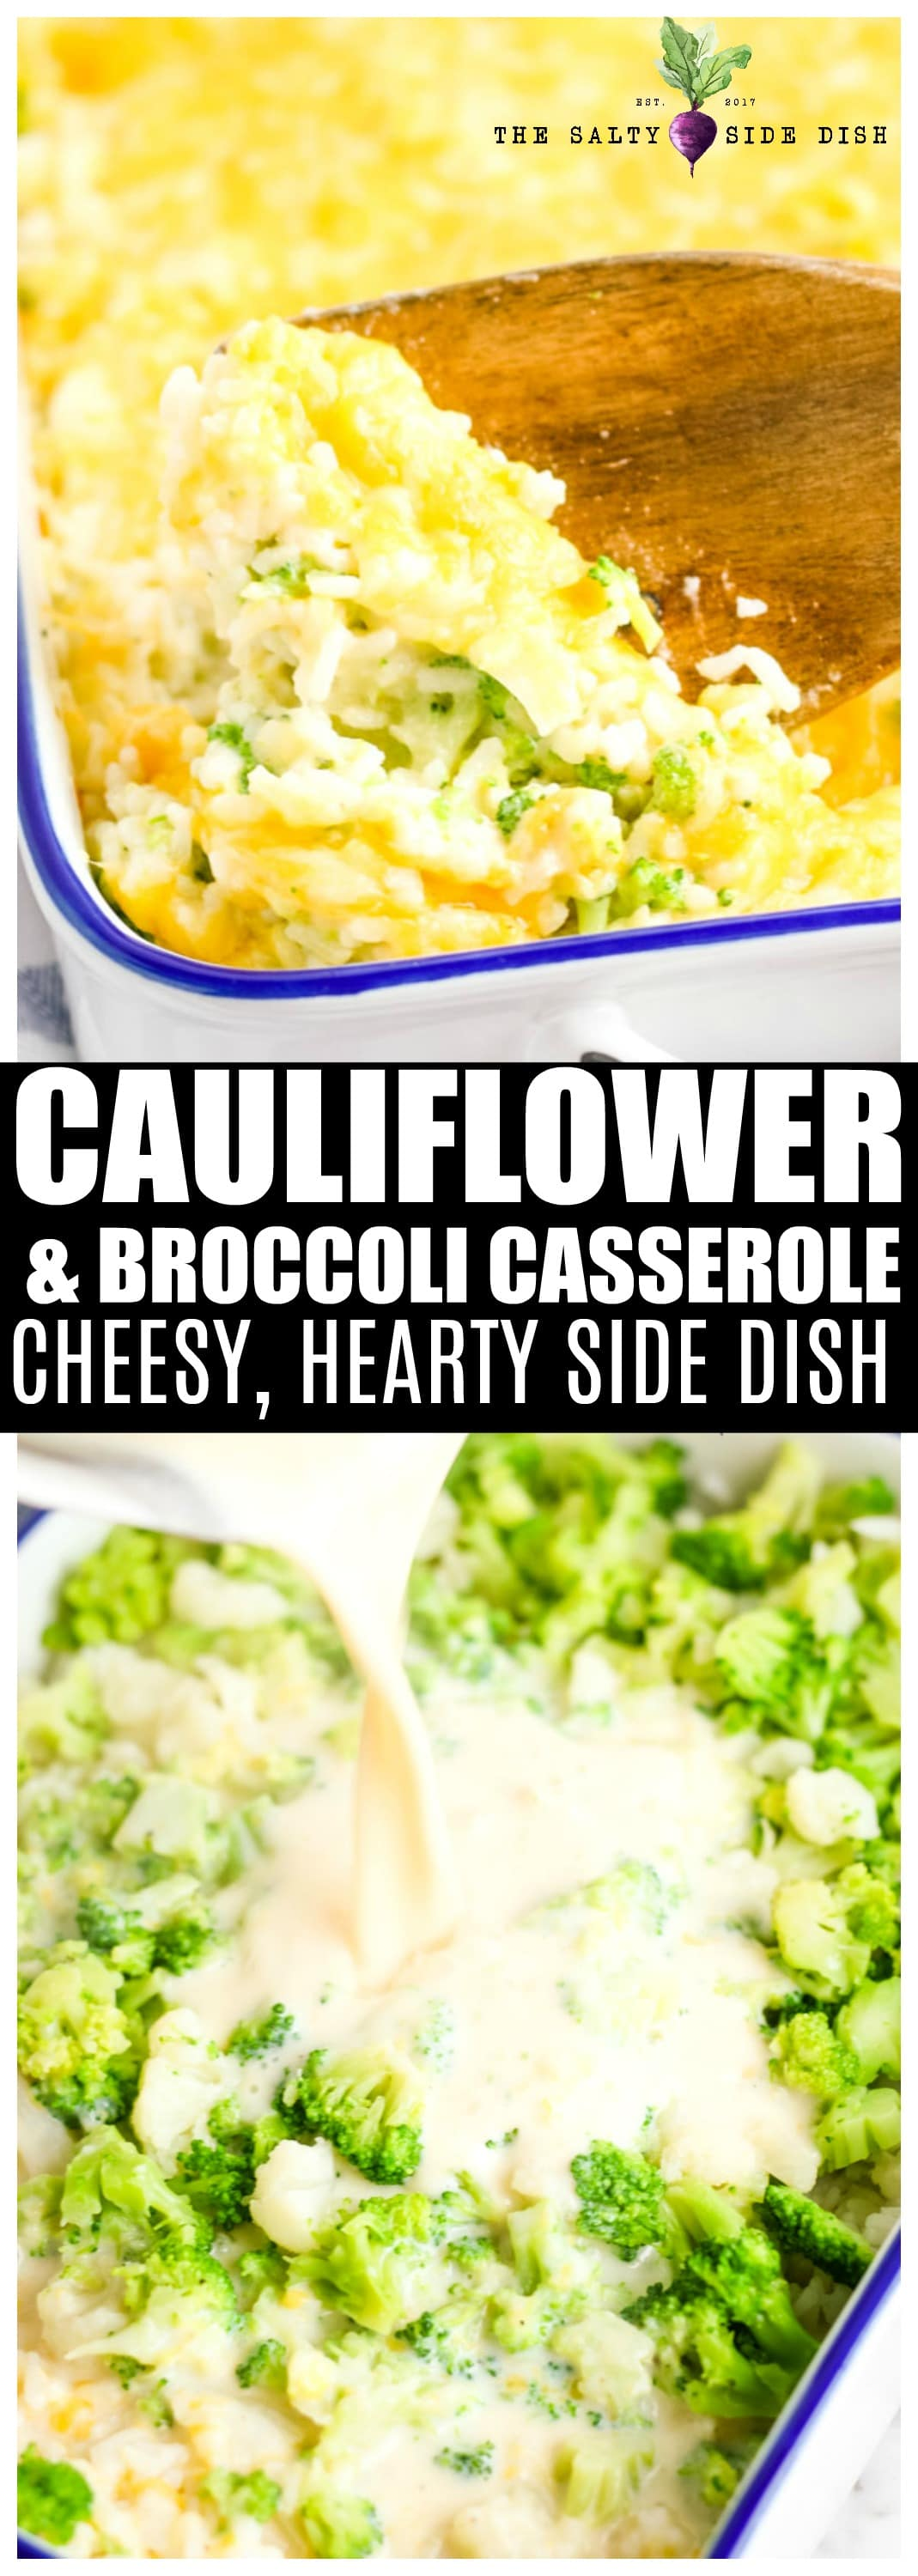 Cauliflower Casserole, or rather a Cheesy Broccoli Cauliflower Rice Casserole, is the perfect hearty side dish #sidedish #casserole #broccoli #cauliflower #cauliflowercasserole